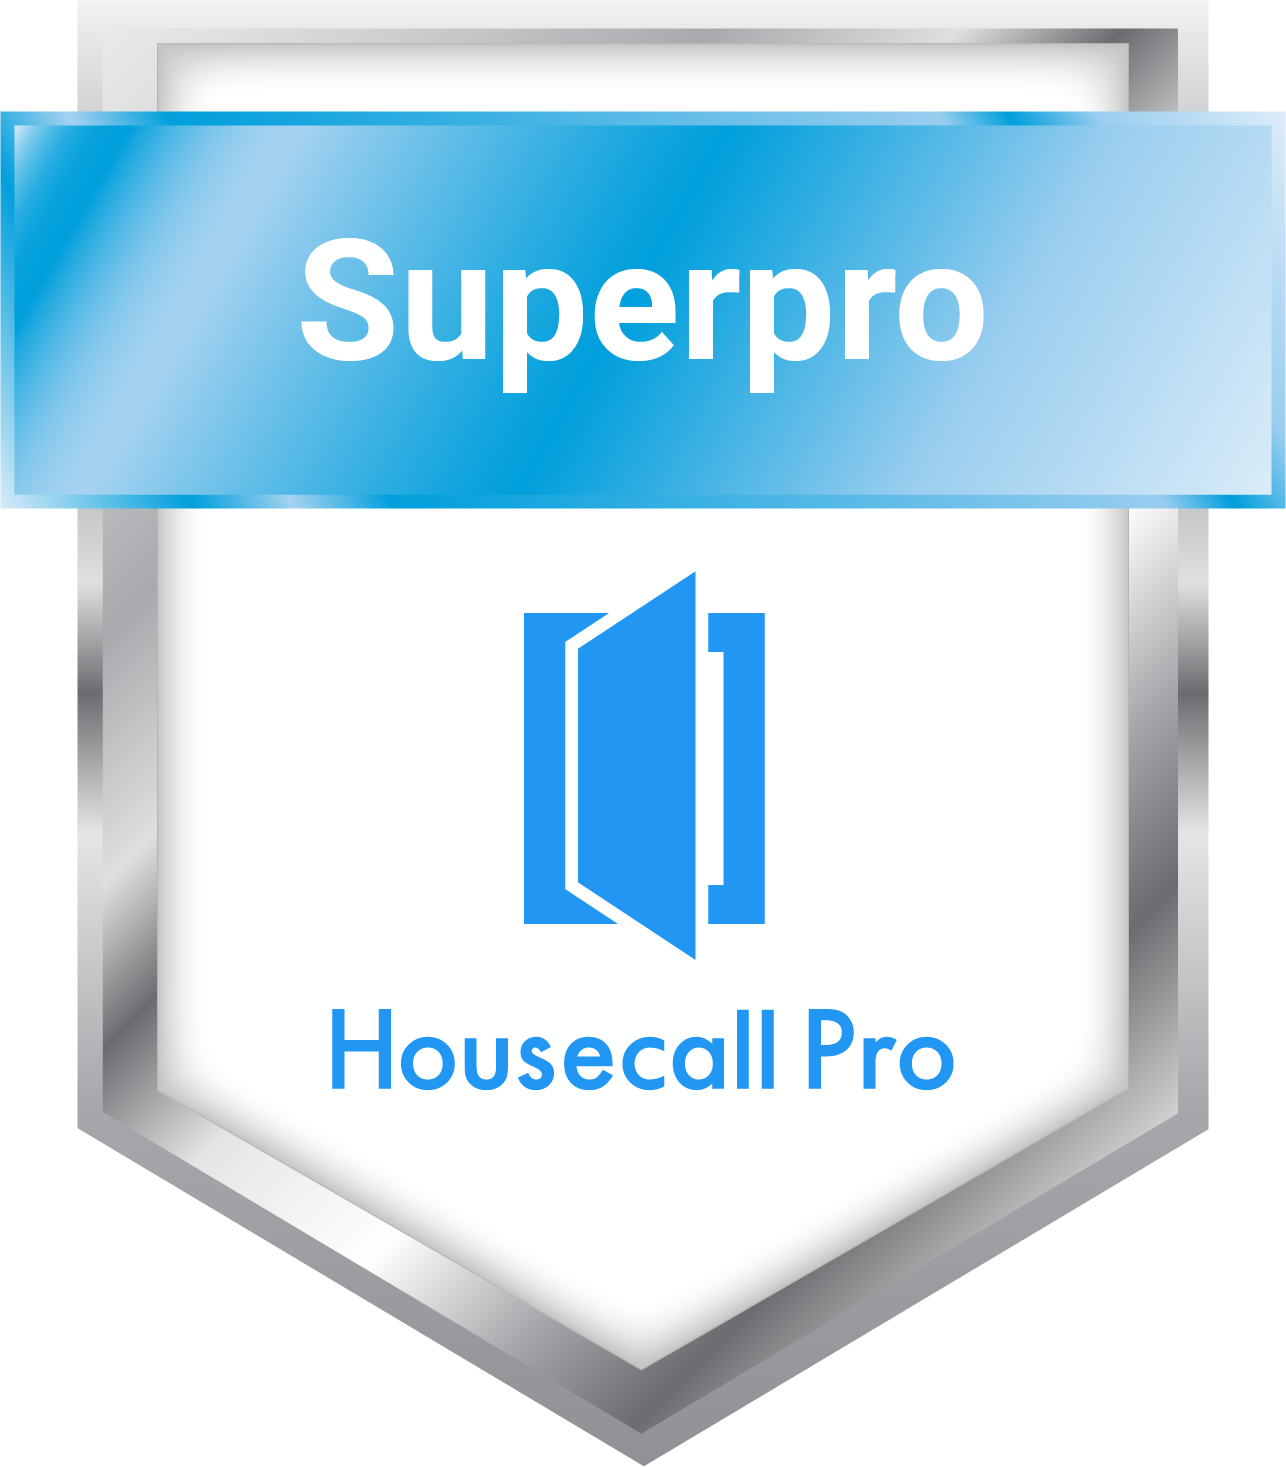 AC control is a housecall pro superpro client